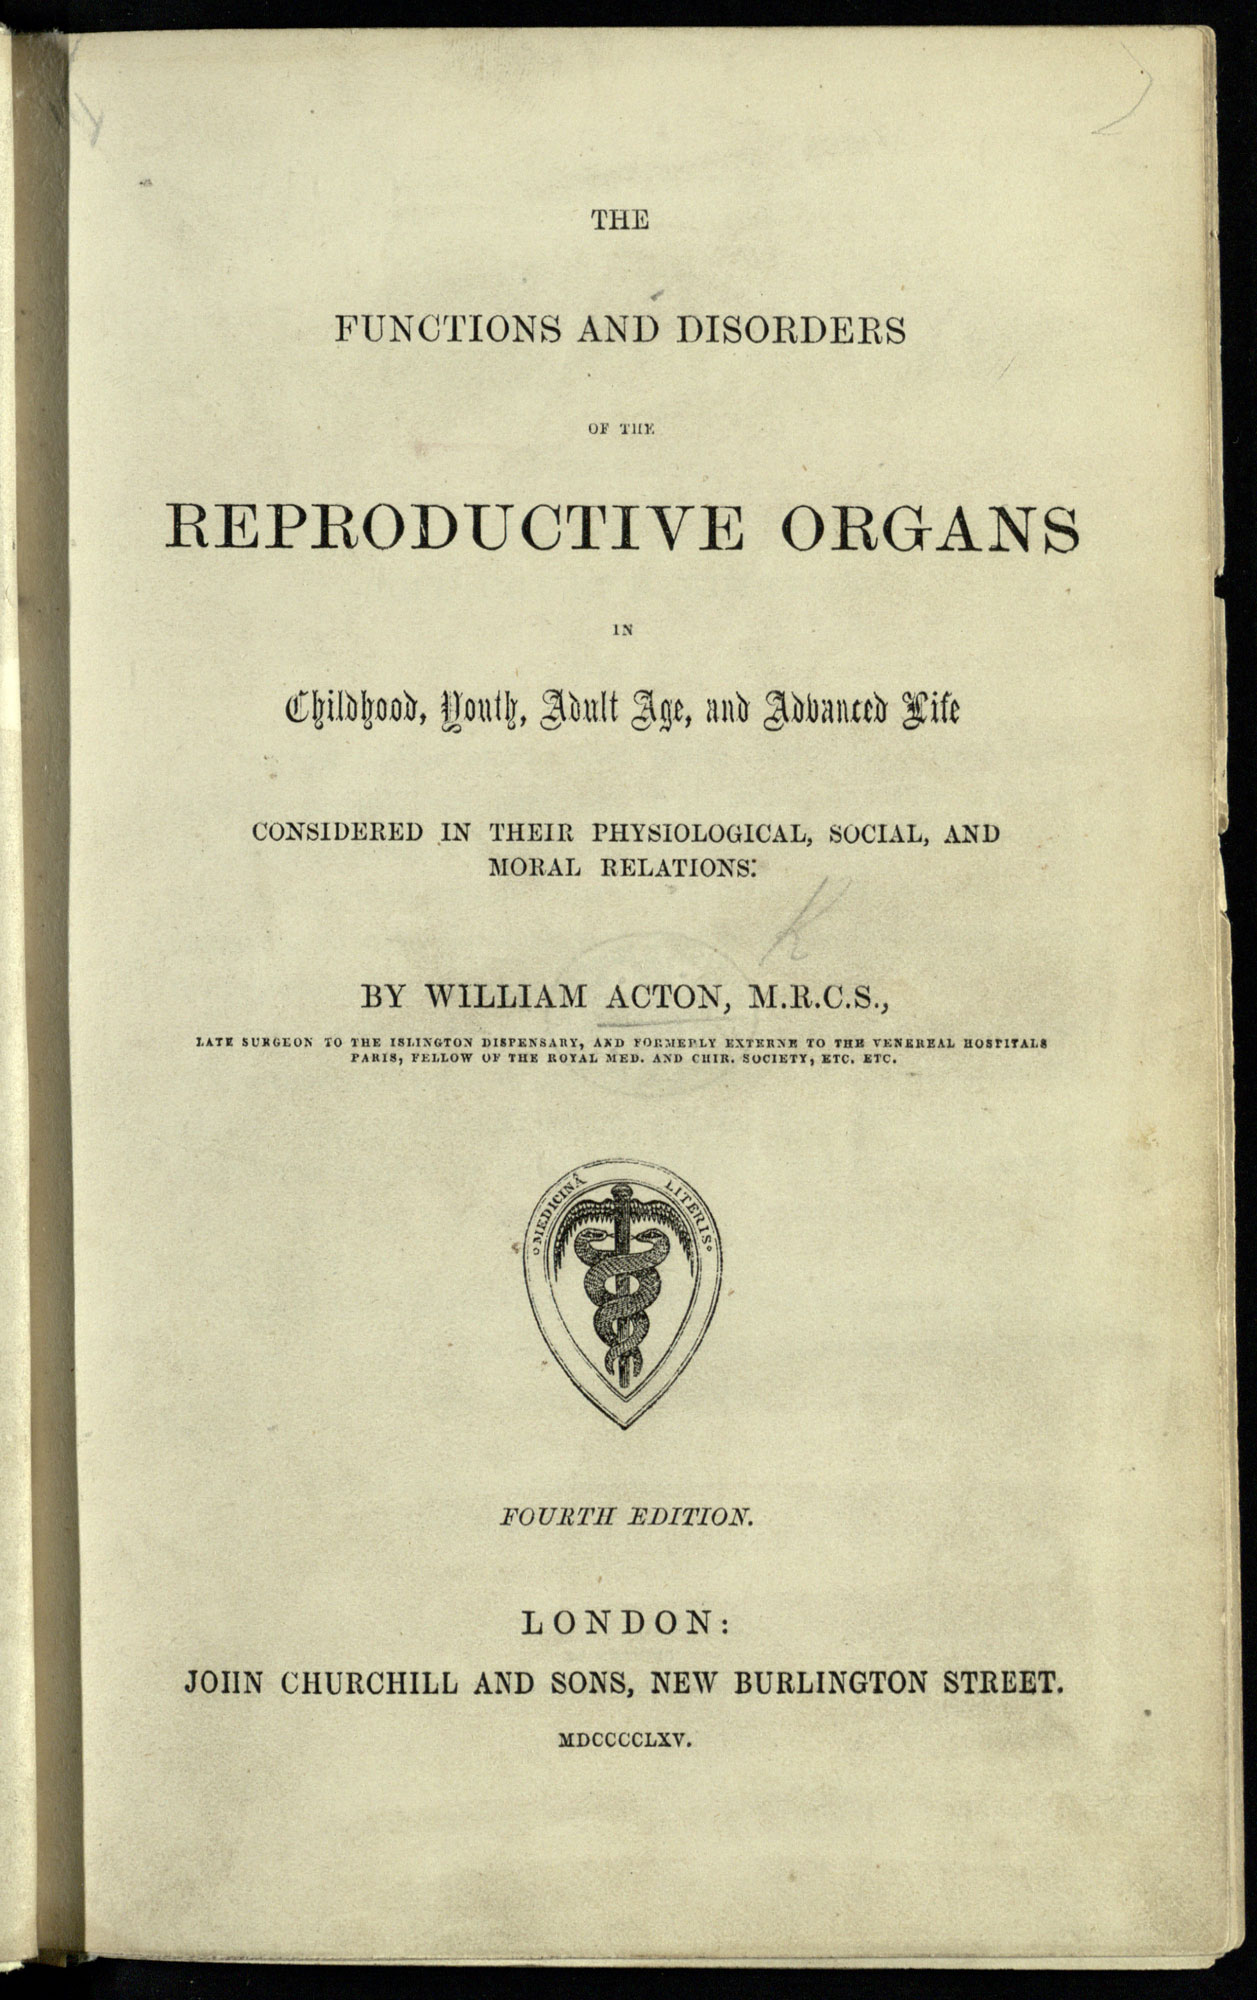 19th century medical views on female sexuality